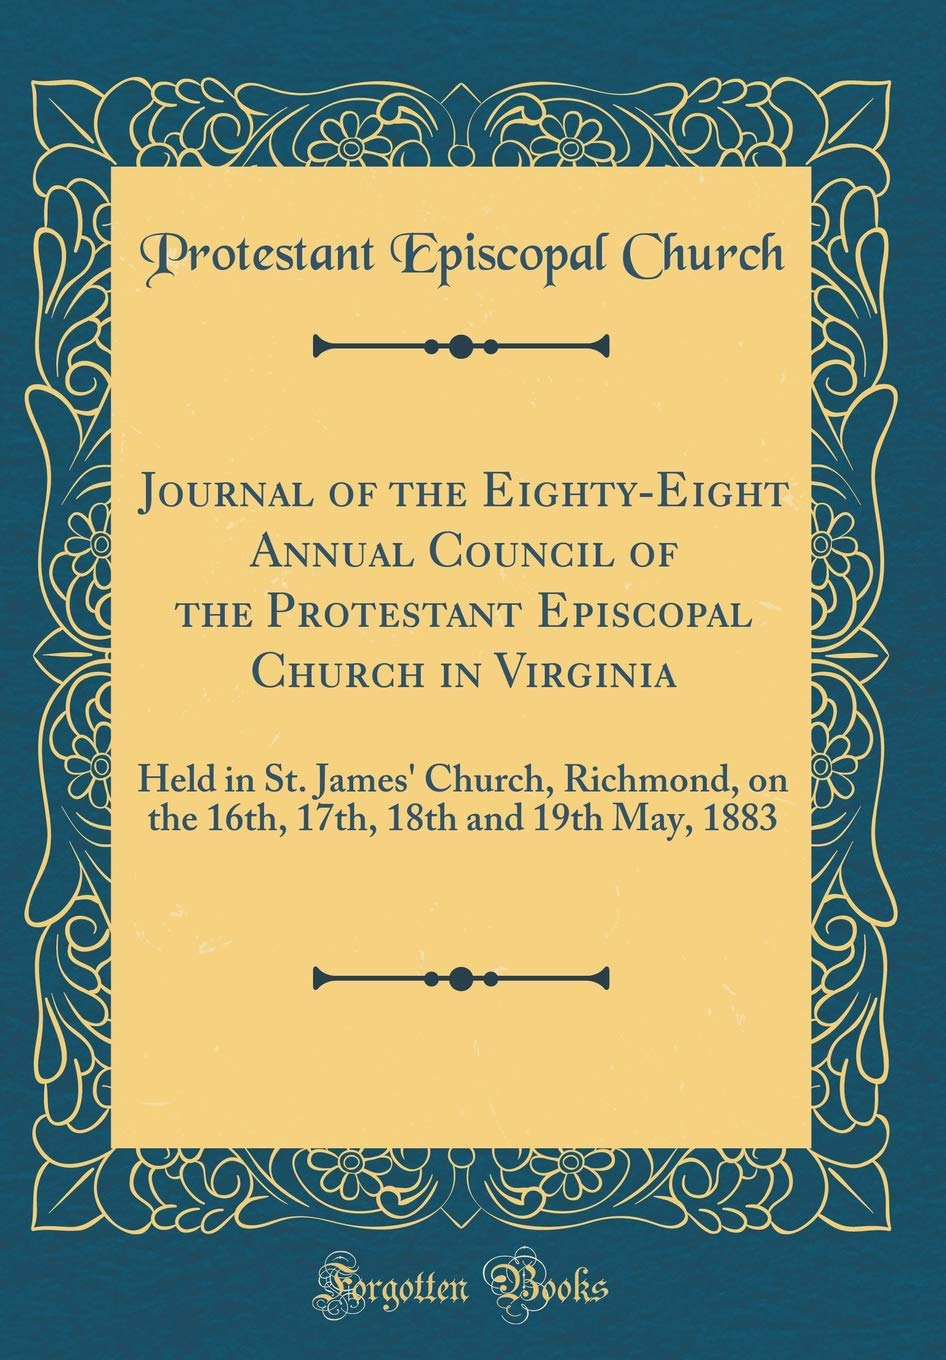 Download Journal of the Eighty-Eight Annual Council of the Protestant Episcopal Church in Virginia: Held in St. James' Church, Richmond, on the 16th, 17th, 18th and 19th May, 1883 (Classic Reprint) pdf epub